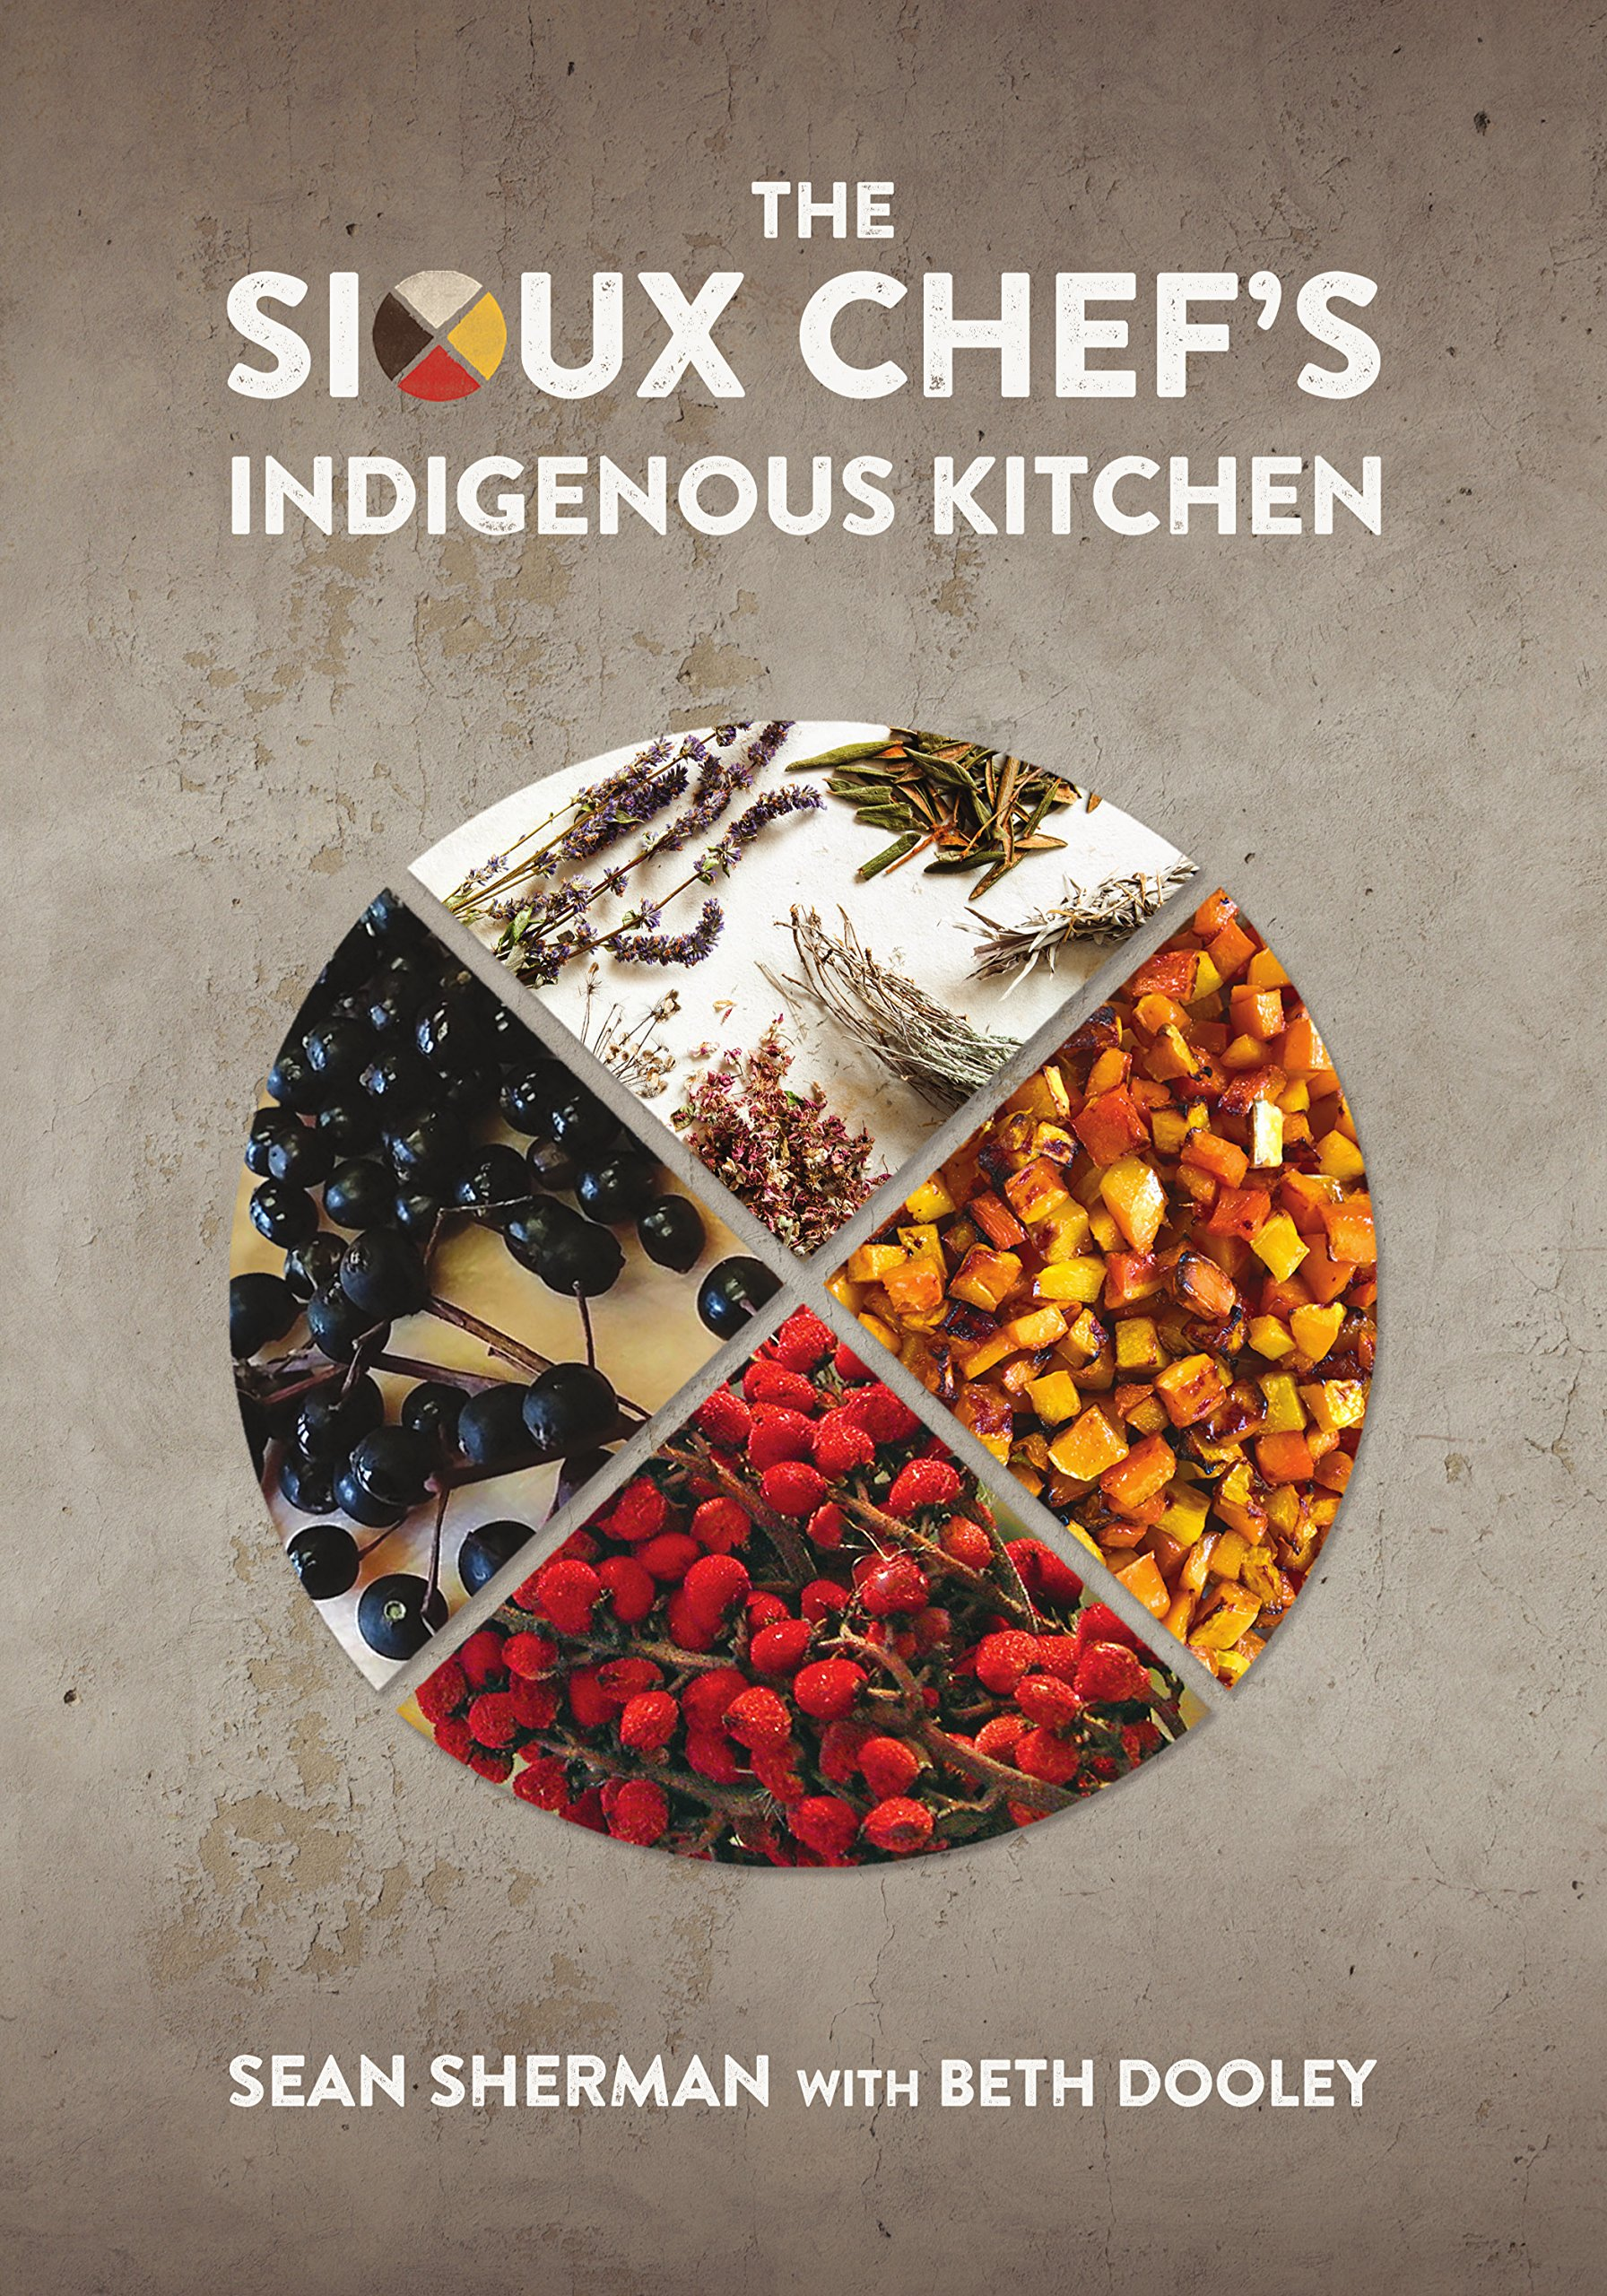 """MN Reads: """"The Sioux Chef's Indigenous Kitchen"""" by Sean Sherman and Beth Dooley (11-23-17)"""